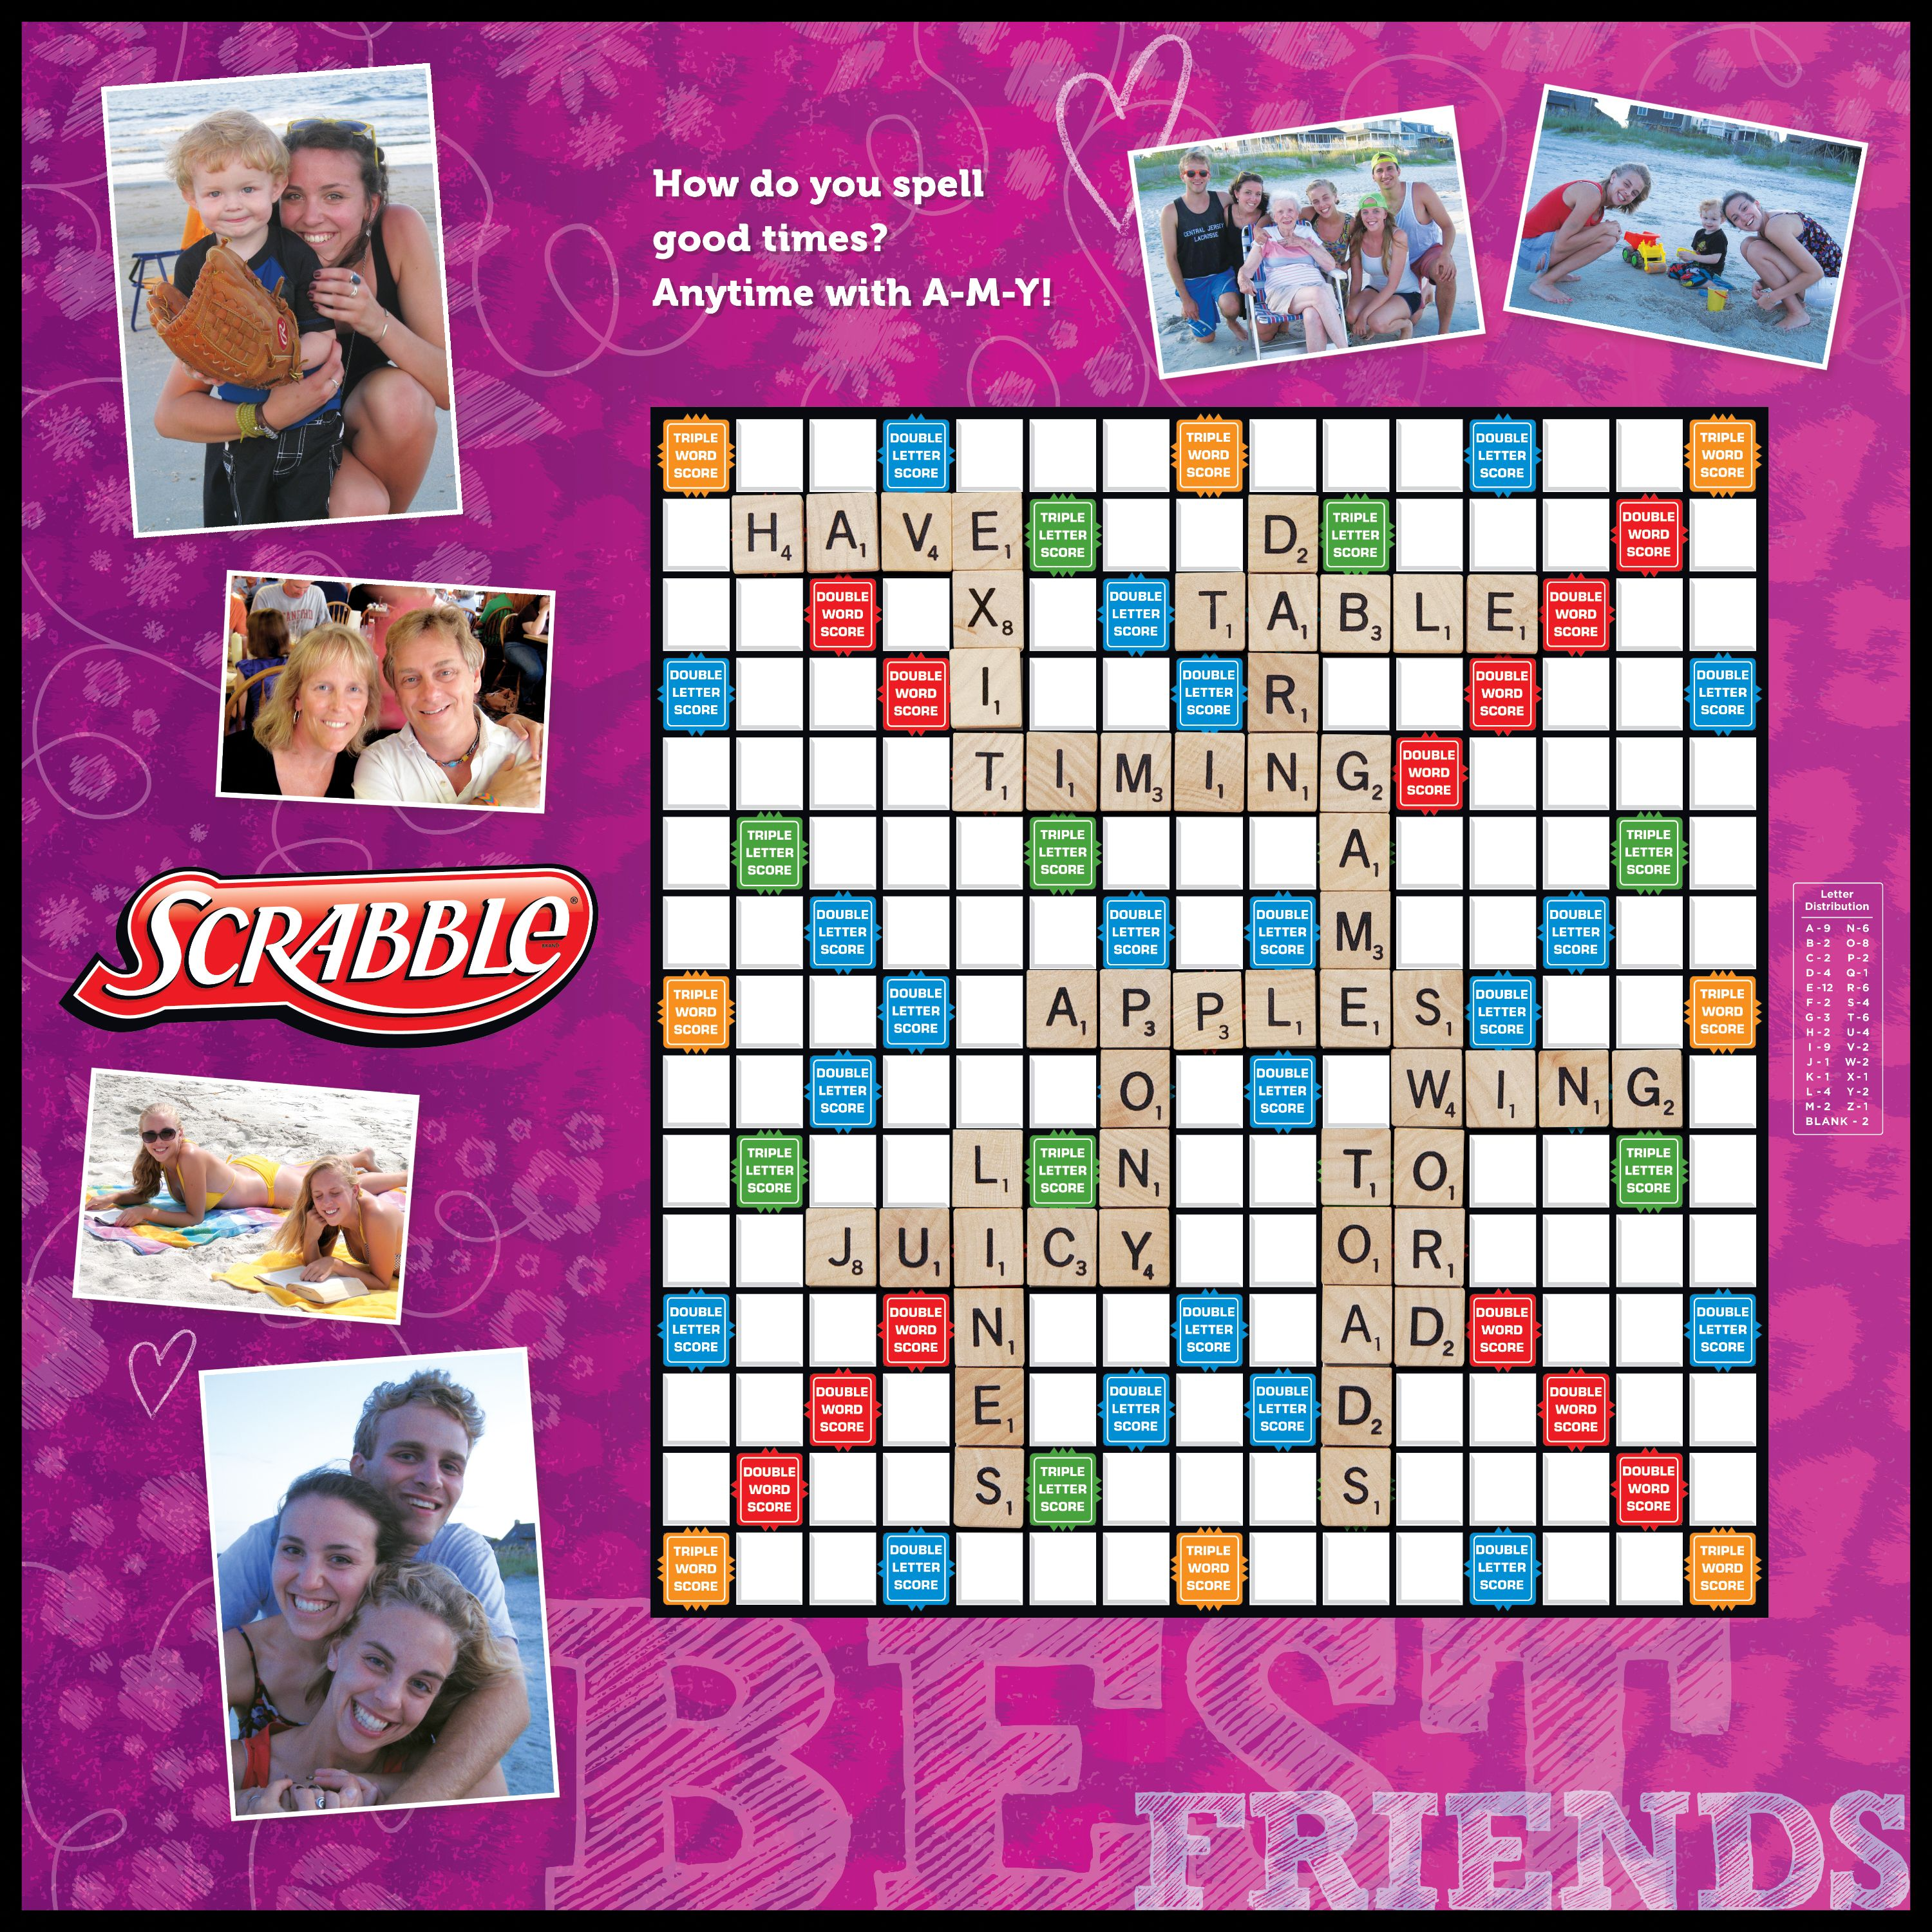 Best Friends Custom Scrabble Game Add Your Own Photos And Captions Makes A Persona Scrabble Gifts Personalized Valentine S Day Gifts Personalized Valentines